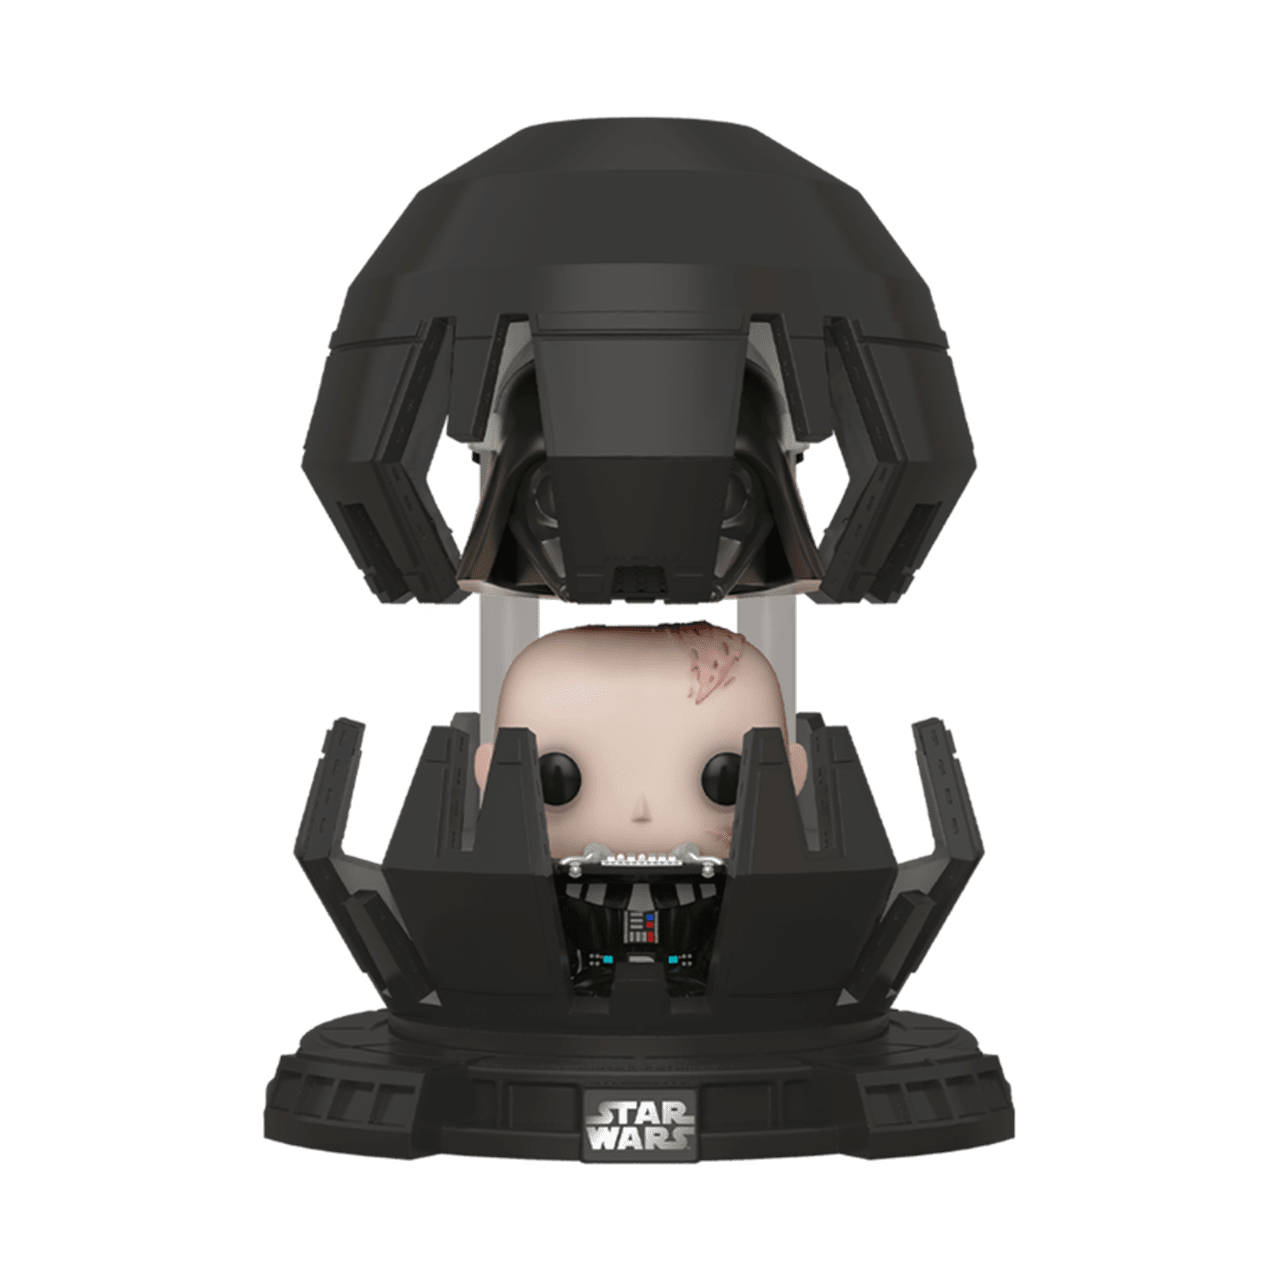 Darth Vader In Meditation Chamber (365) Empire Strikes Back 40TH Anniversary Pop! Deluxe - 1